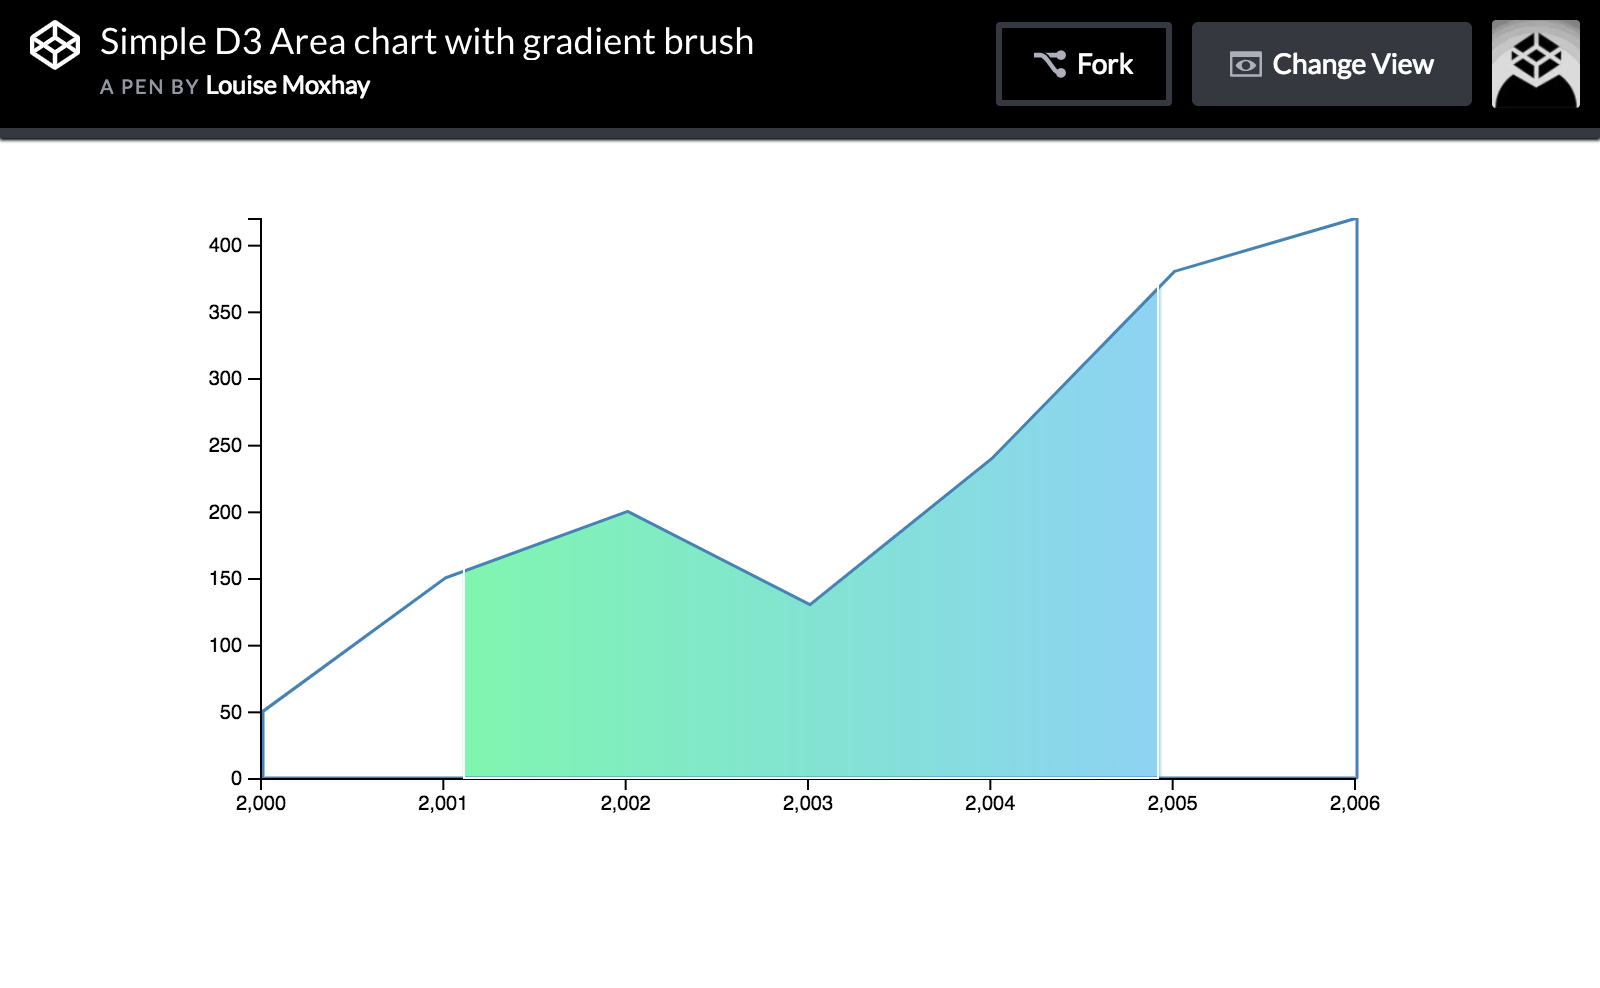 How to create a gradient brush chart using D3 js - Louise